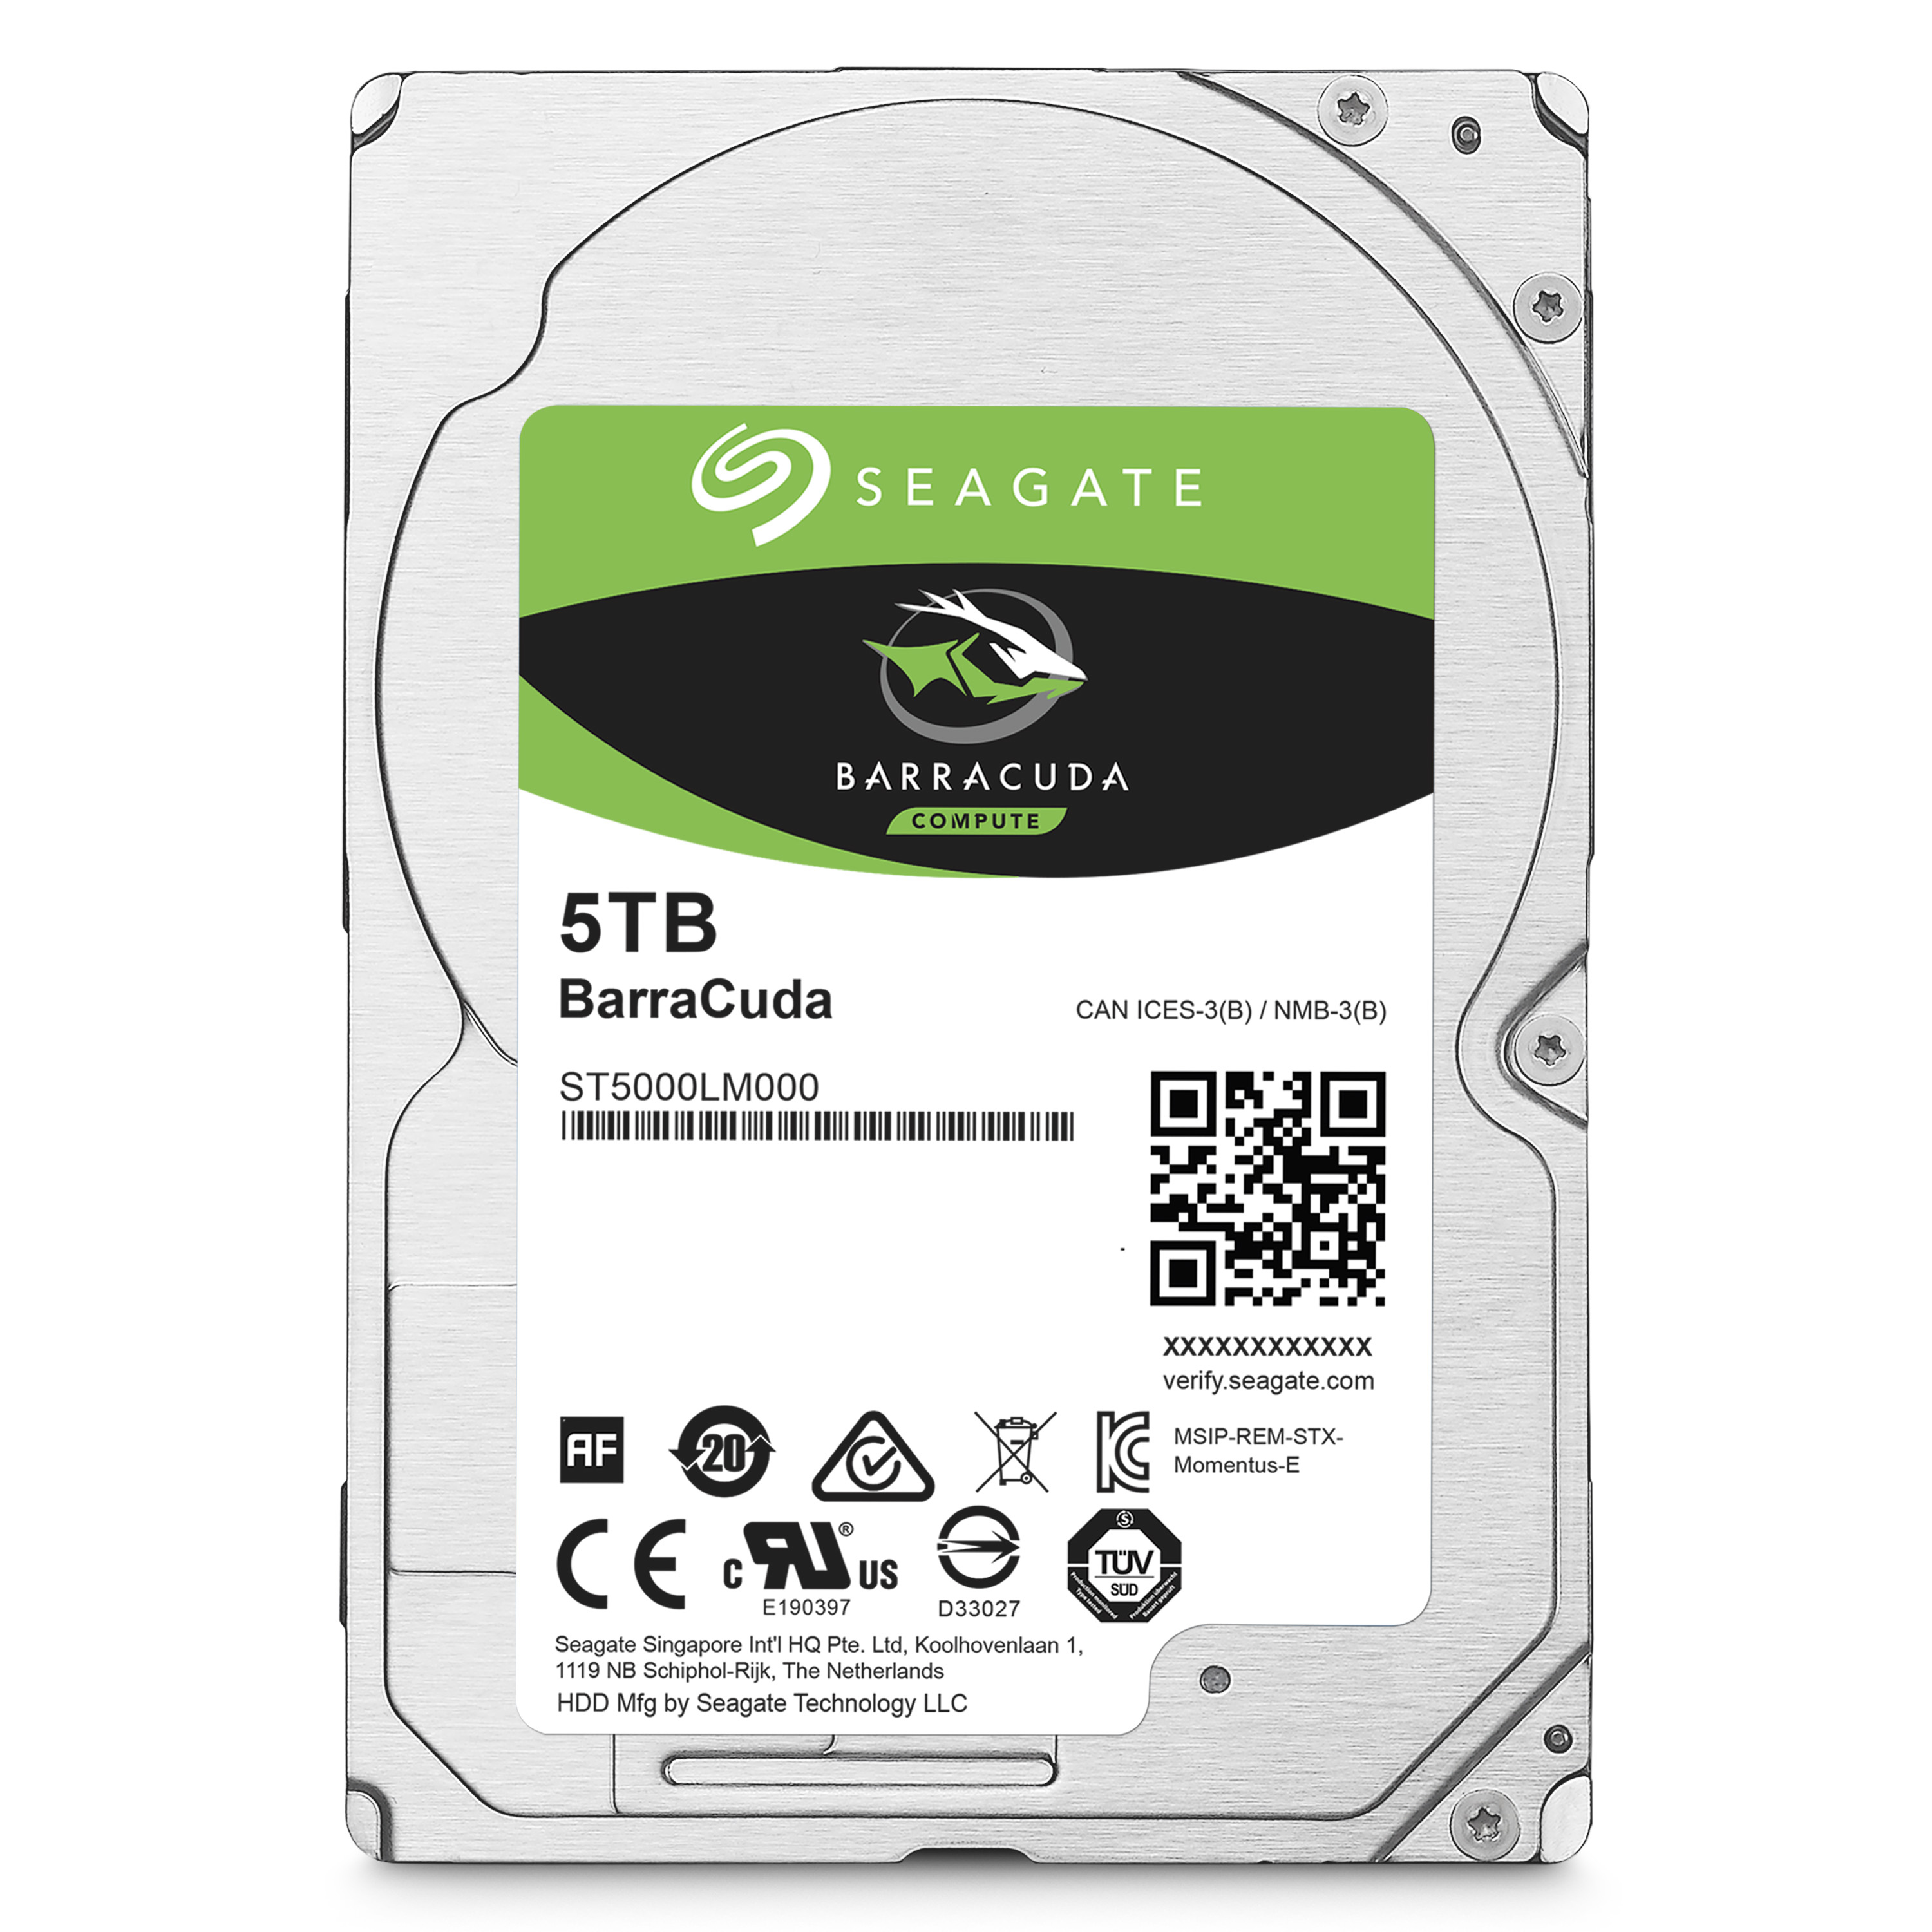 40PK 5TB MOBILE HDDSATA 5400 RPM 128MB 2.5IN